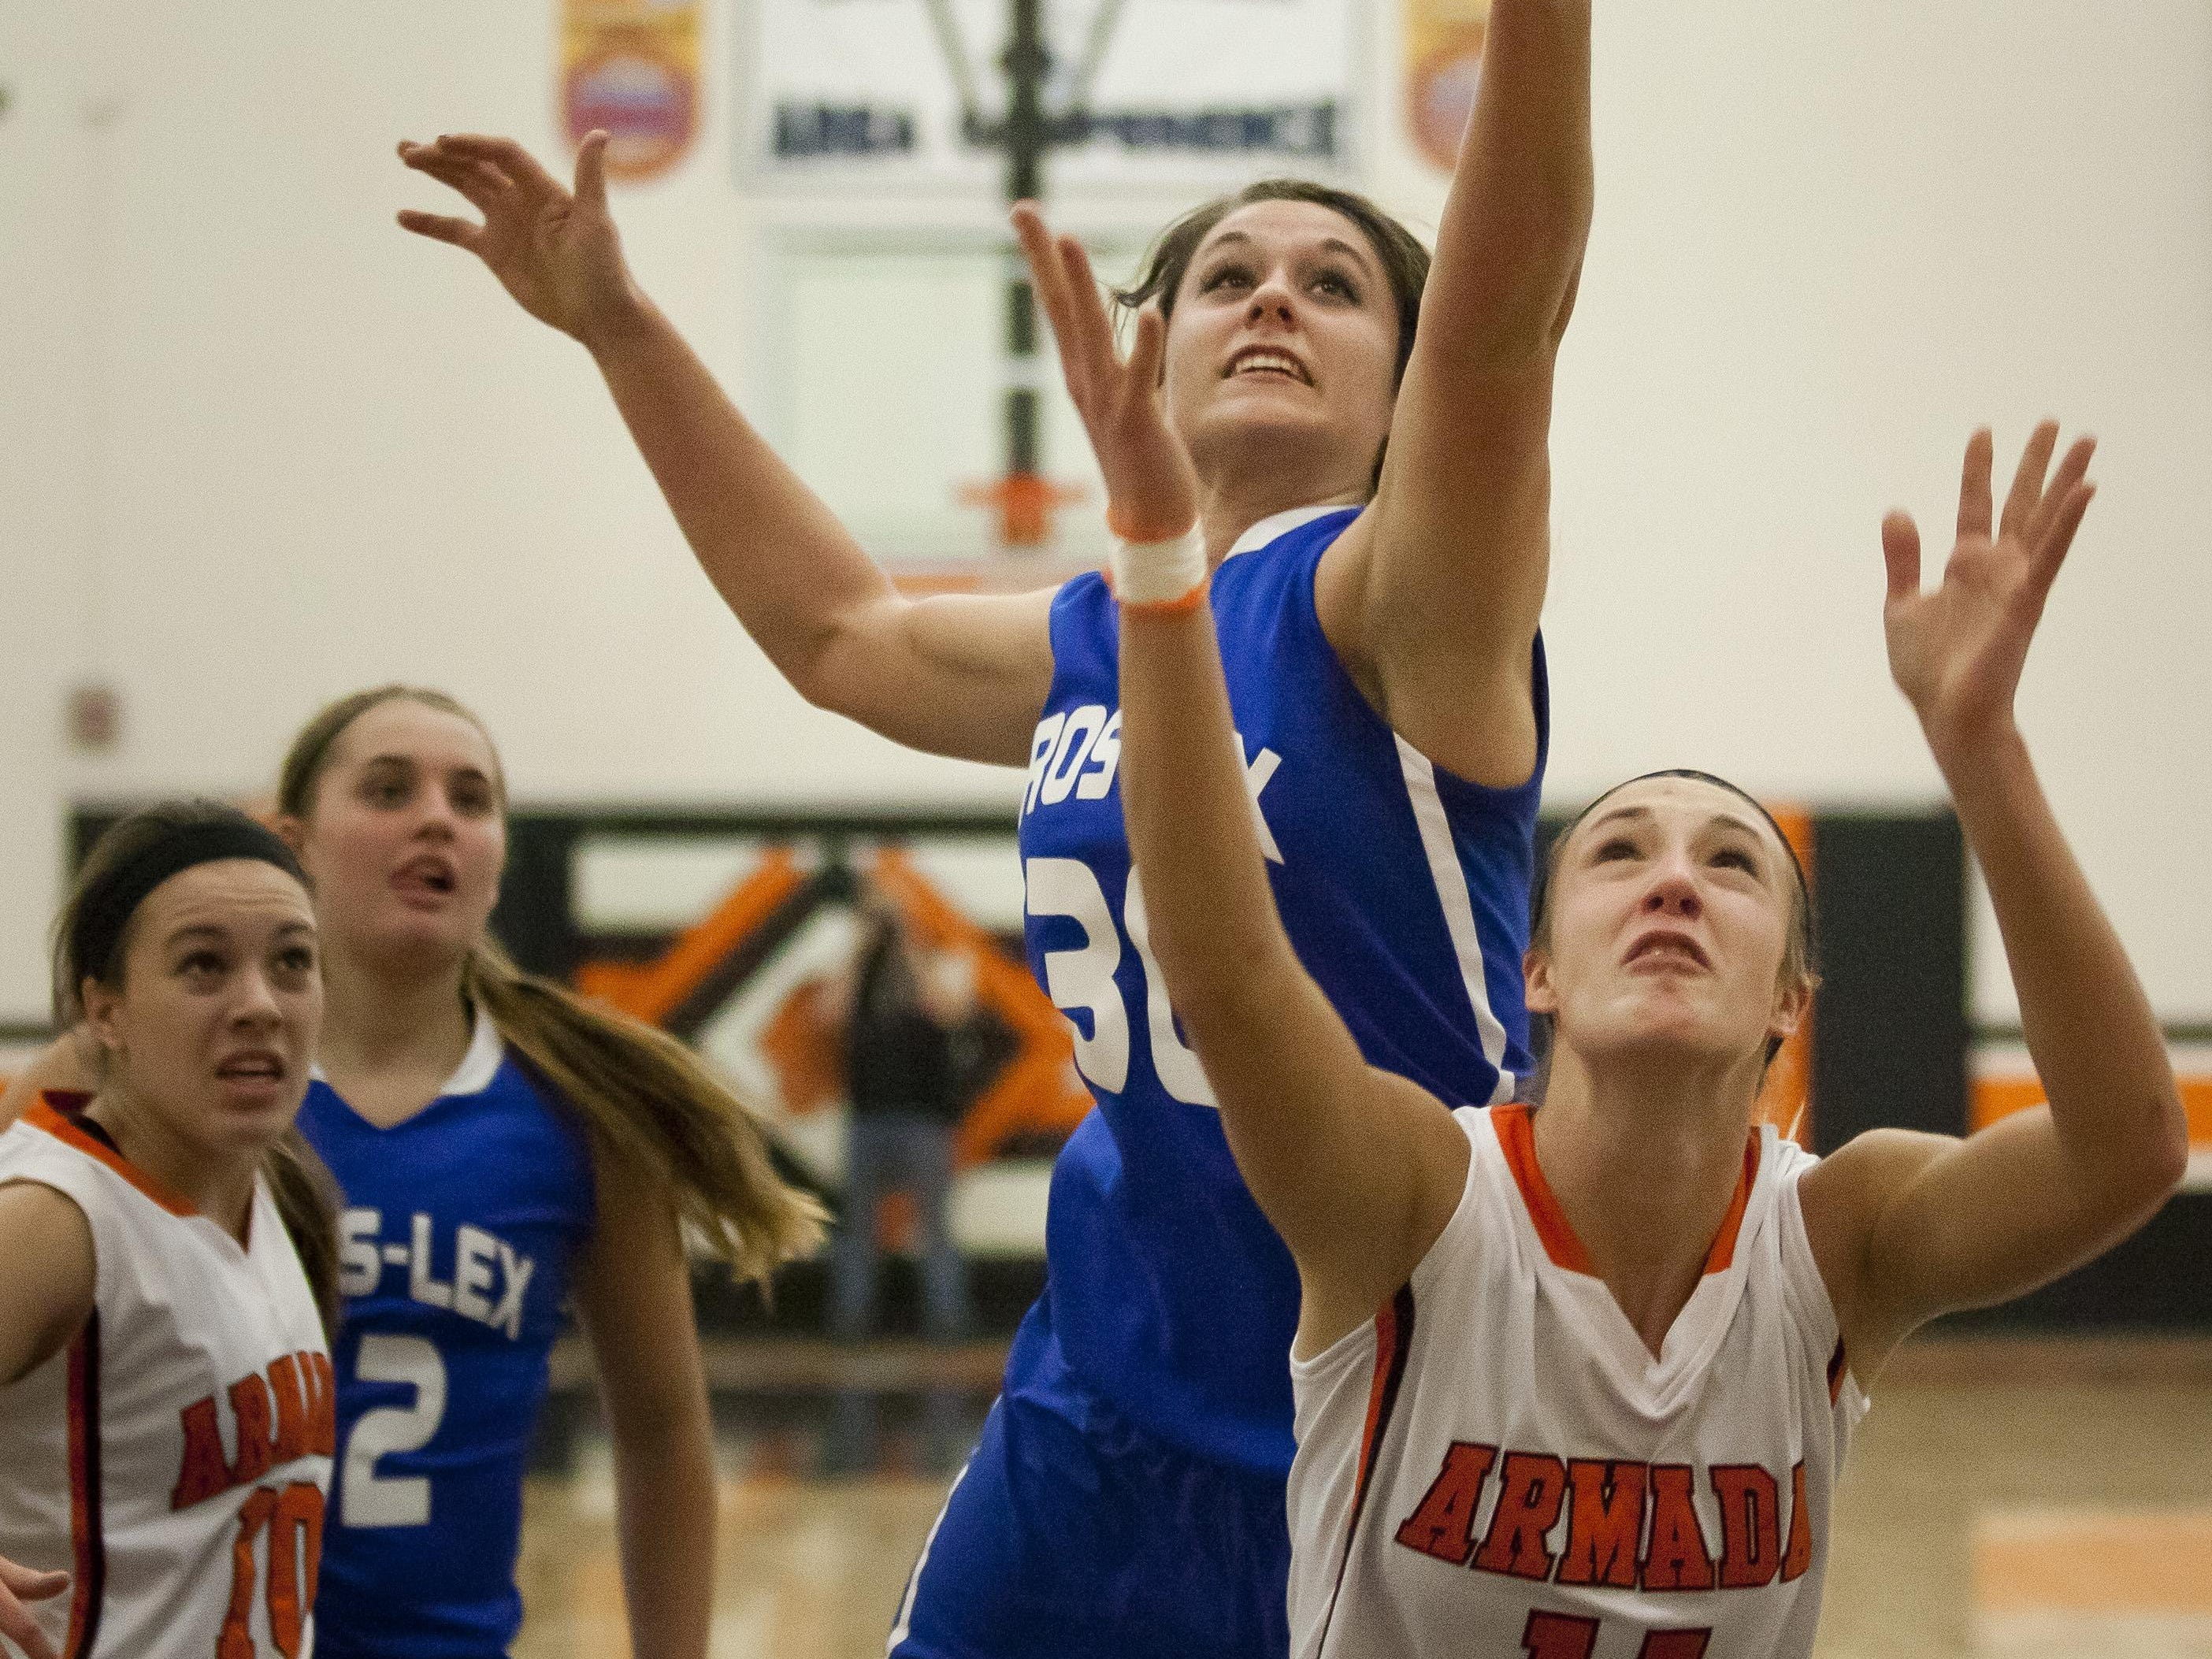 Megan Guitar led Croswell-Lexington to a BWAC and district title in basketball.